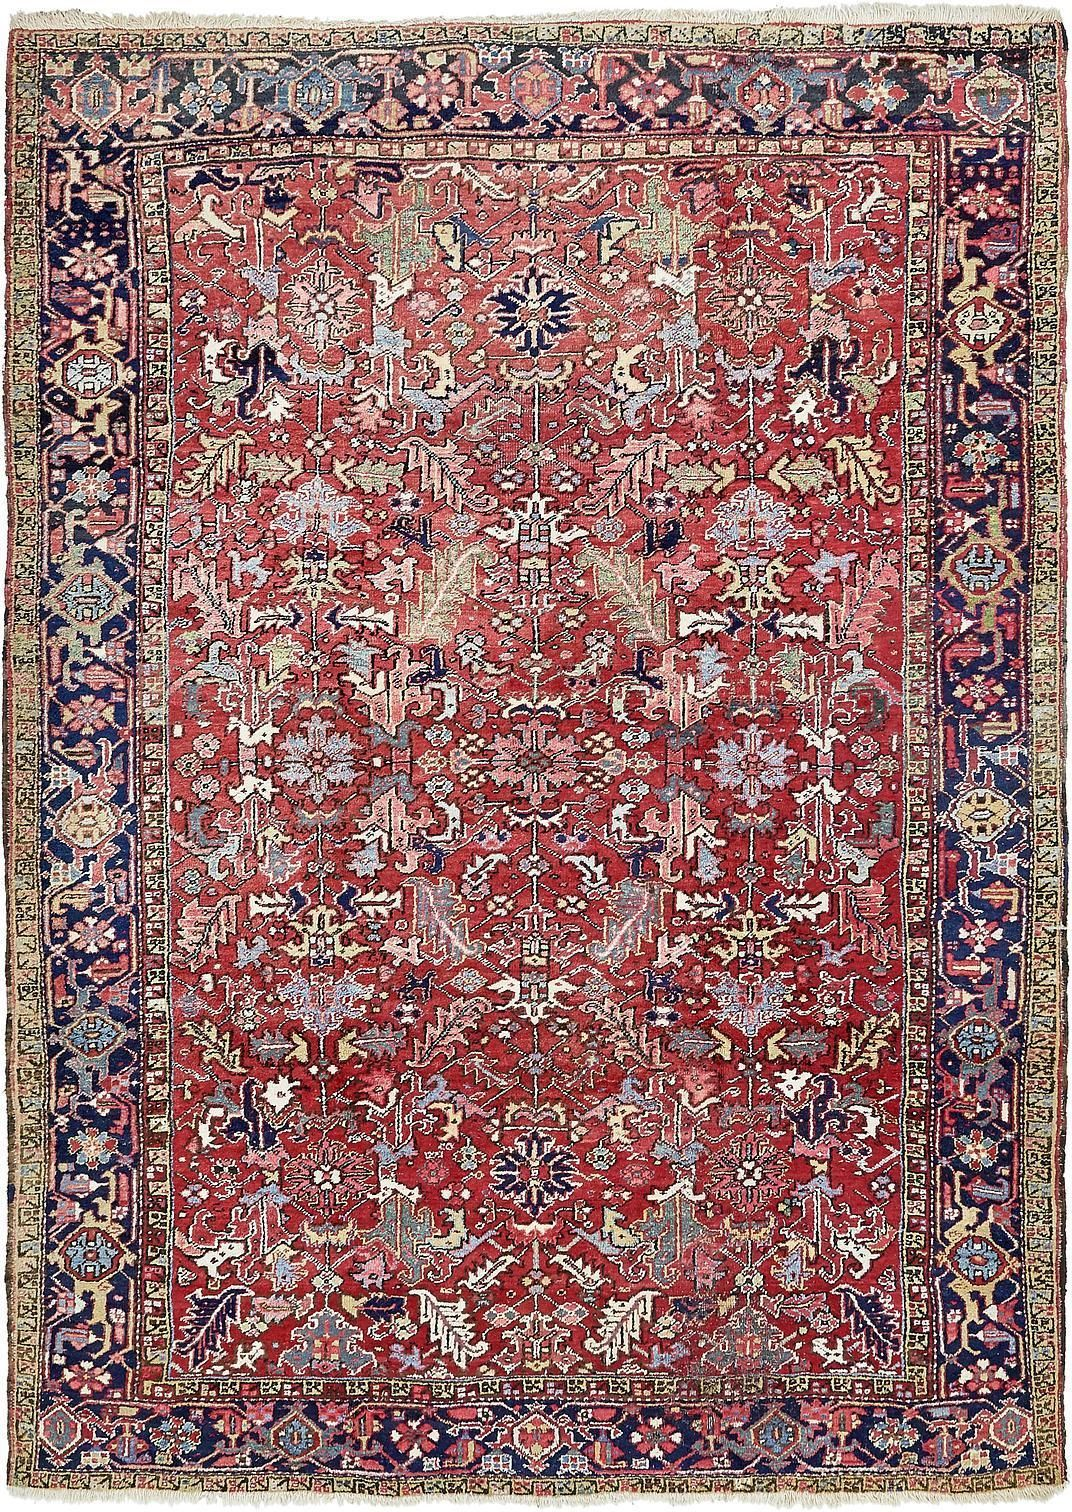 Red 7 10 X 10 10 Heriz Persian Rug Persian Rugs Esalerugs Rugs Persian Rug Rugs On Carpet